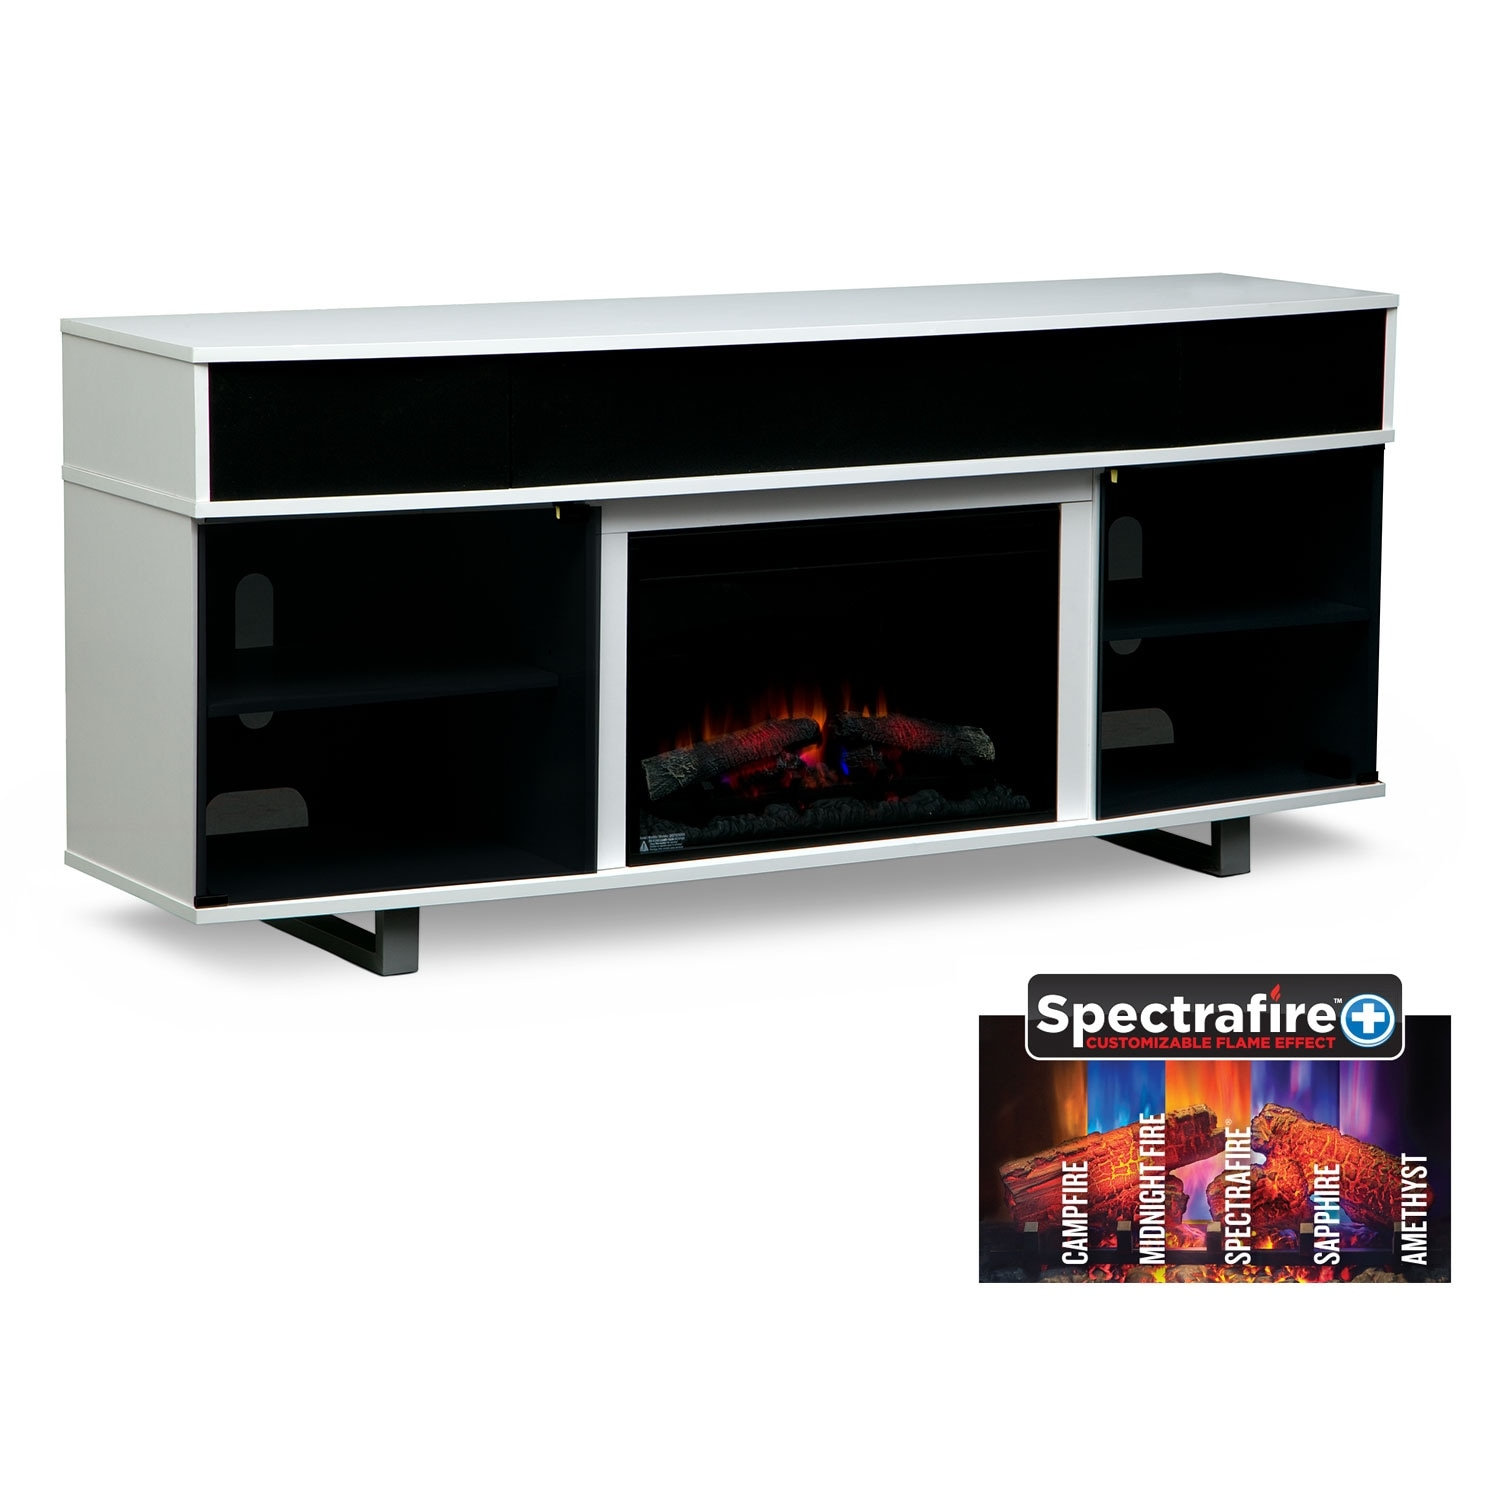 "Pacer 72"" Traditional Fireplace TV Stand with Sound Bar - White"